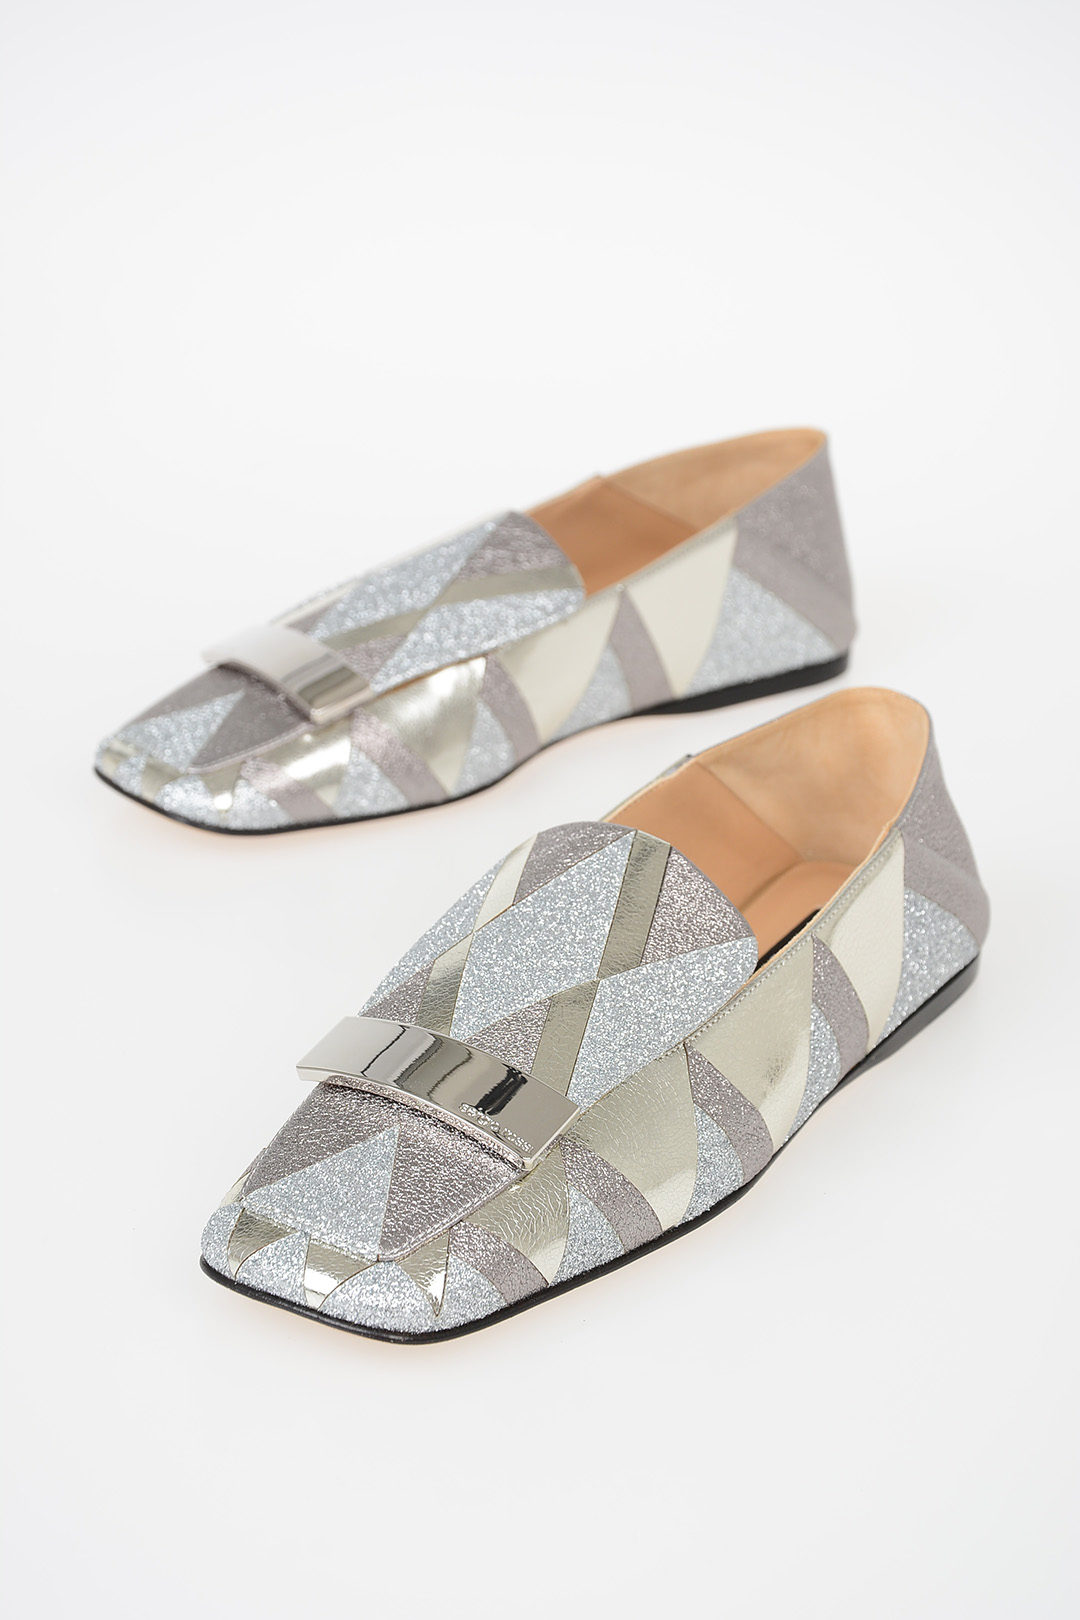 248c350a6 Sergio Rossi Glittered Loafers women - Glamood Outlet